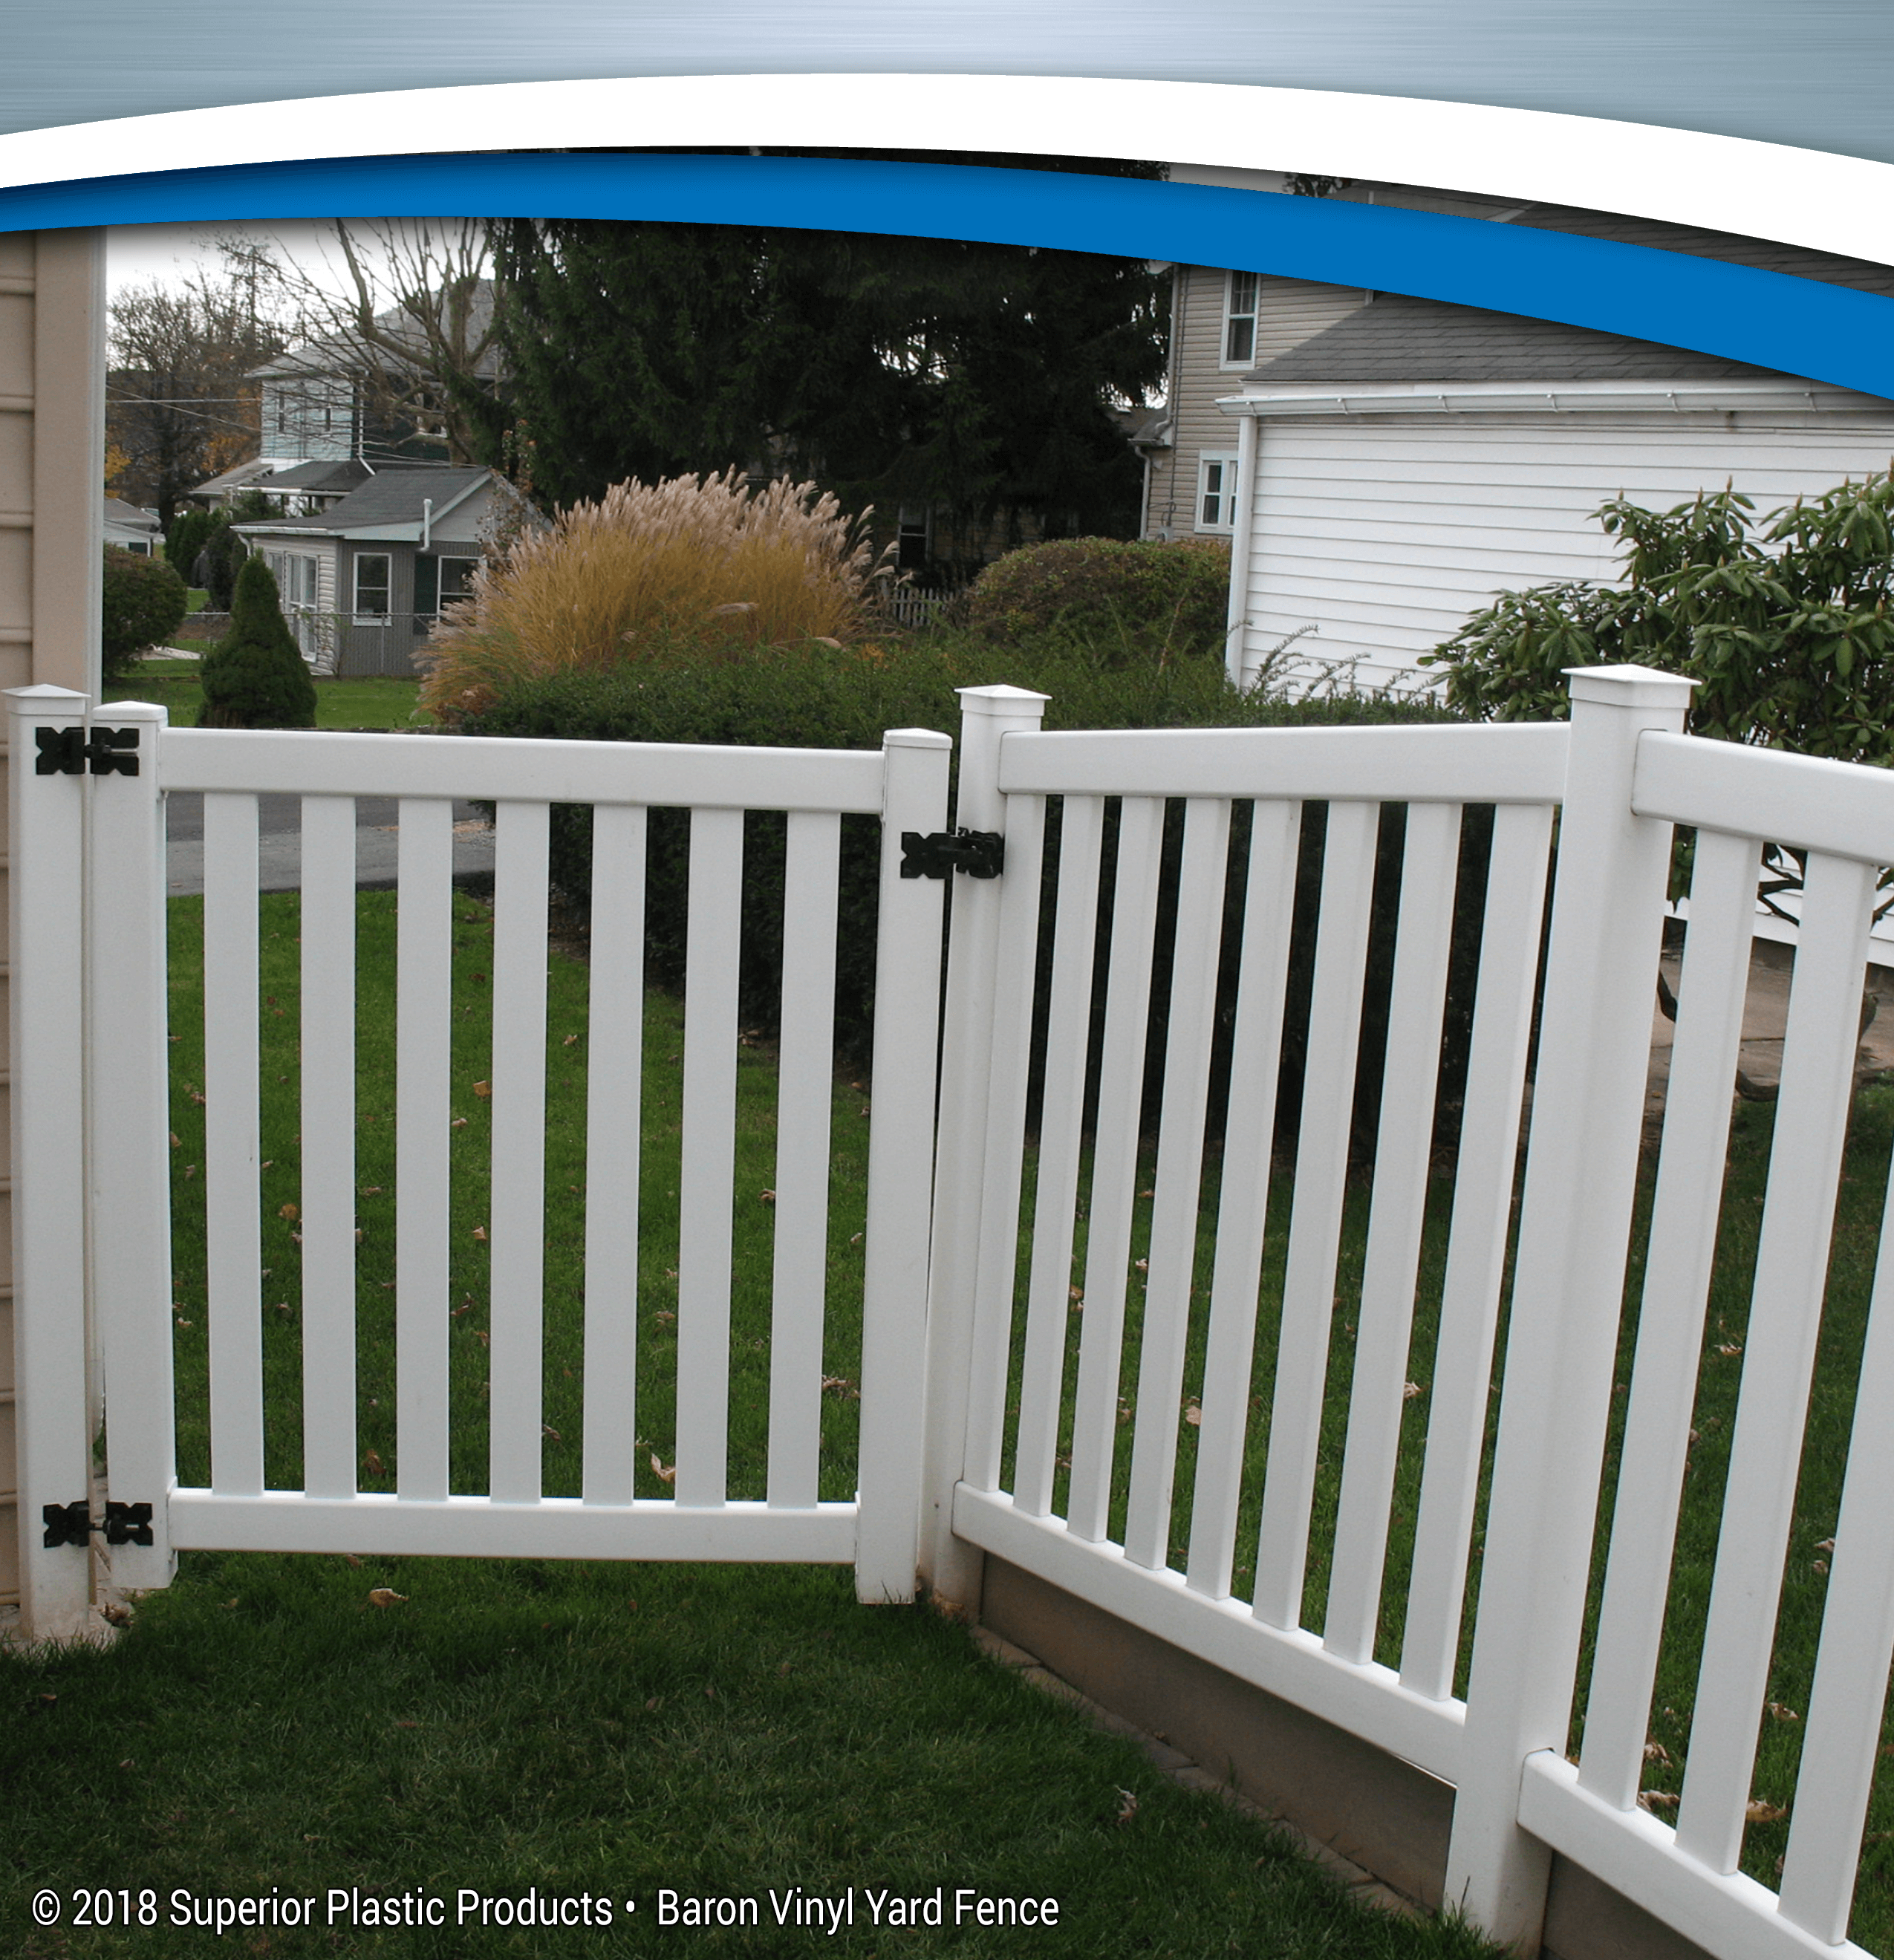 Baron Vinyl Yard Fence Superior Plastic Products